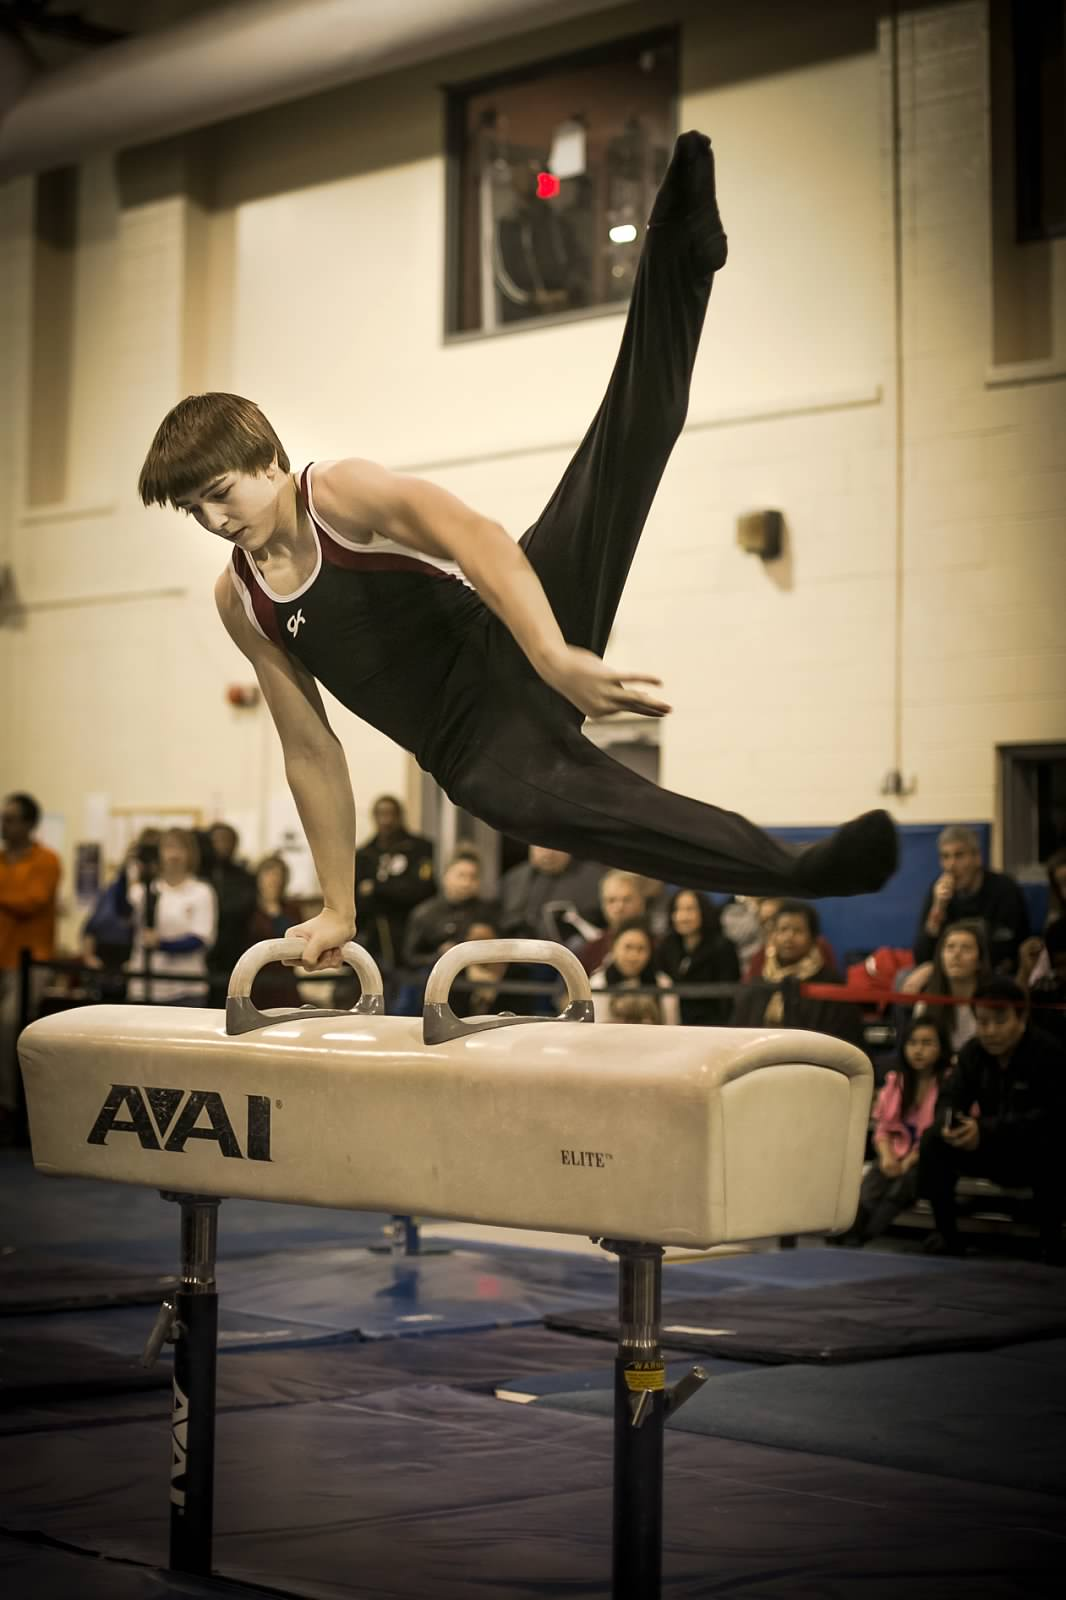 A Level 9 on the pommel horse during the 2013 BWI.